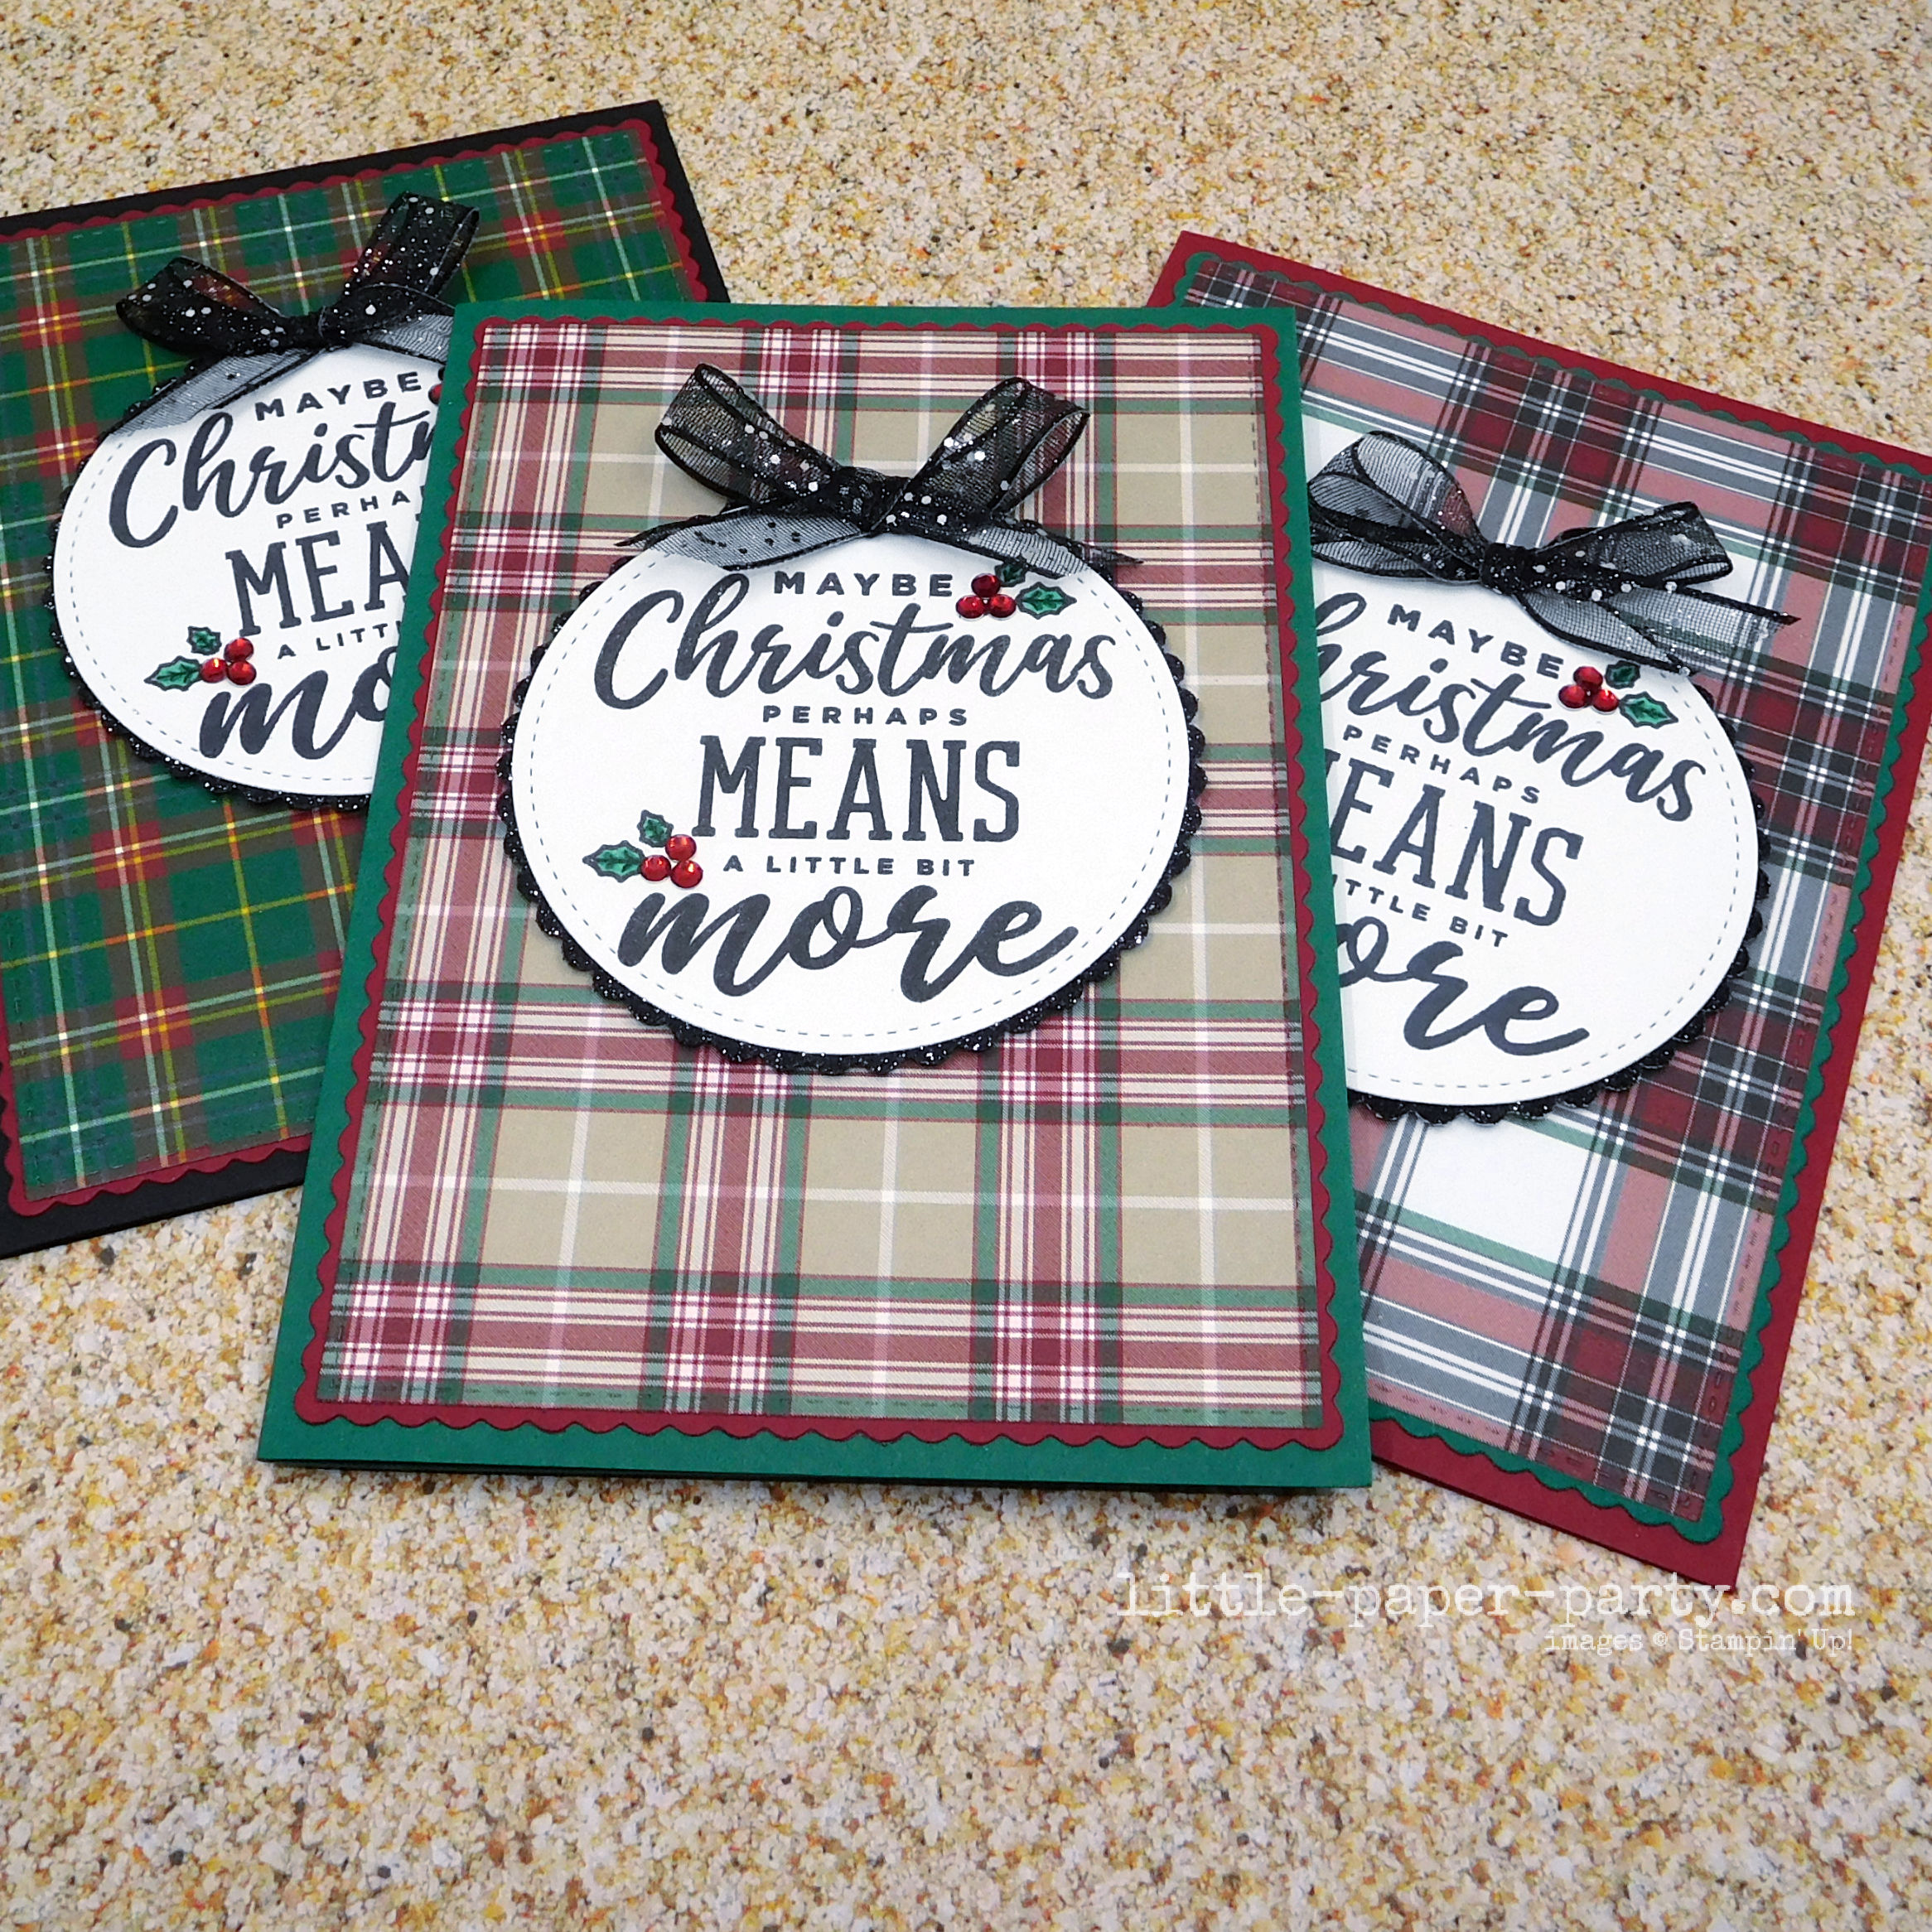 Little Paper Party, 12 Days of Christmas 2020 - Stamp-A-Stack #1, 2.jpg